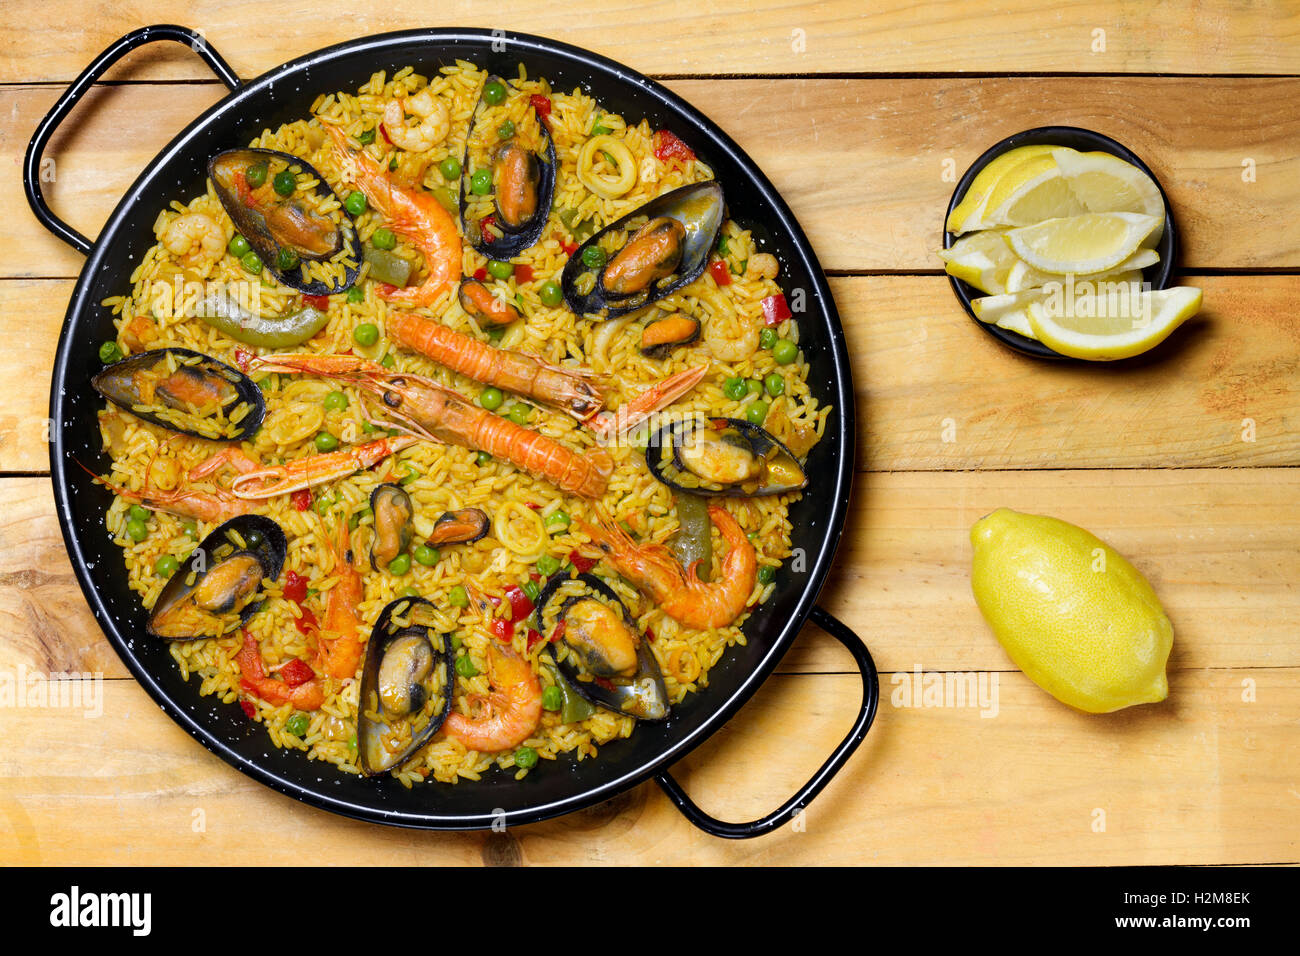 Spanish paella on a wooden table with lemon - Stock Image